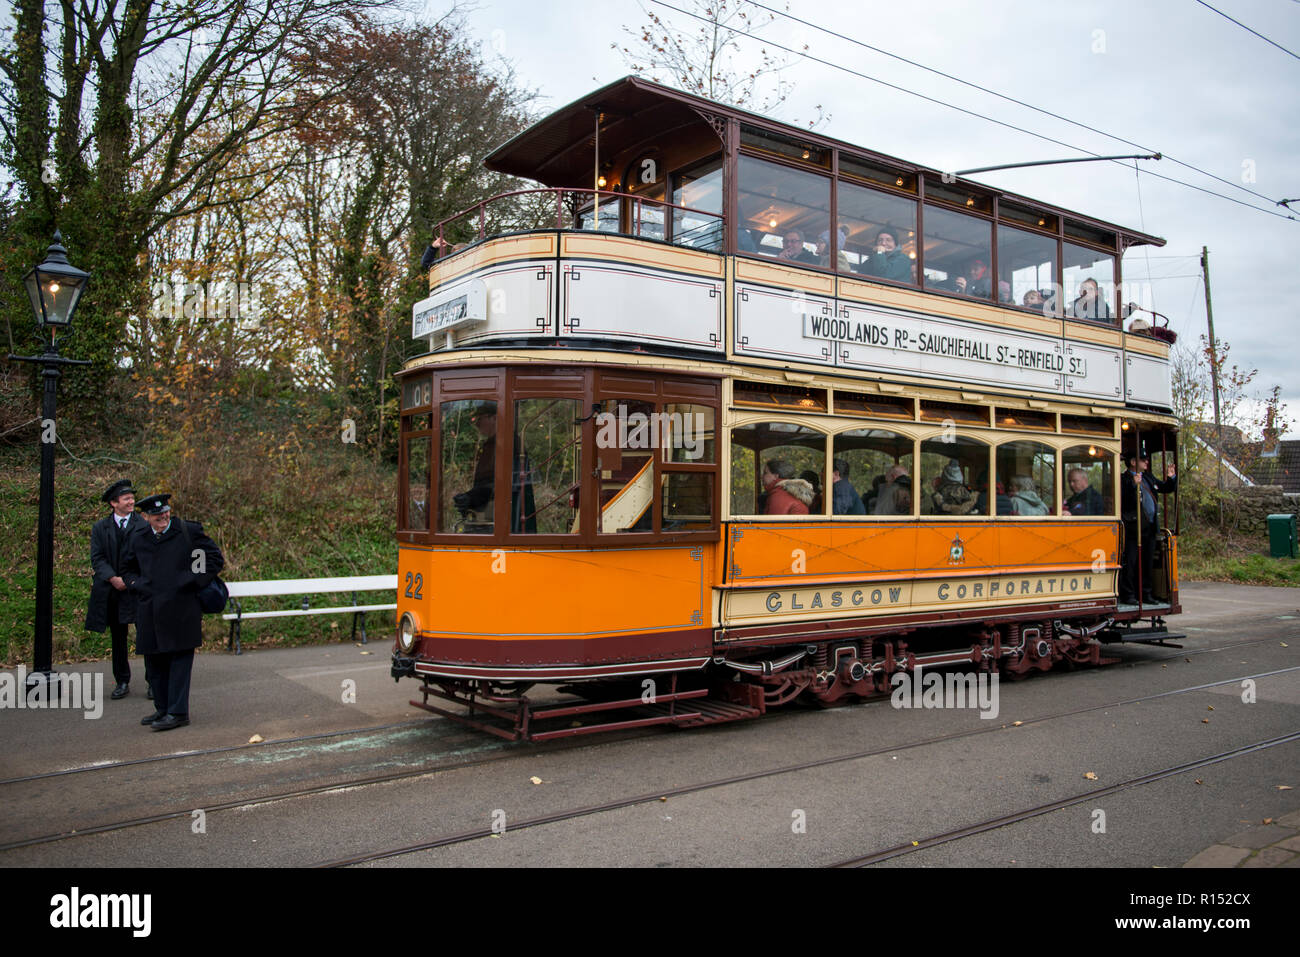 Vintage Glasgow Tram on route at Crich Tramway Village, Derbyshire, UK - Stock Image